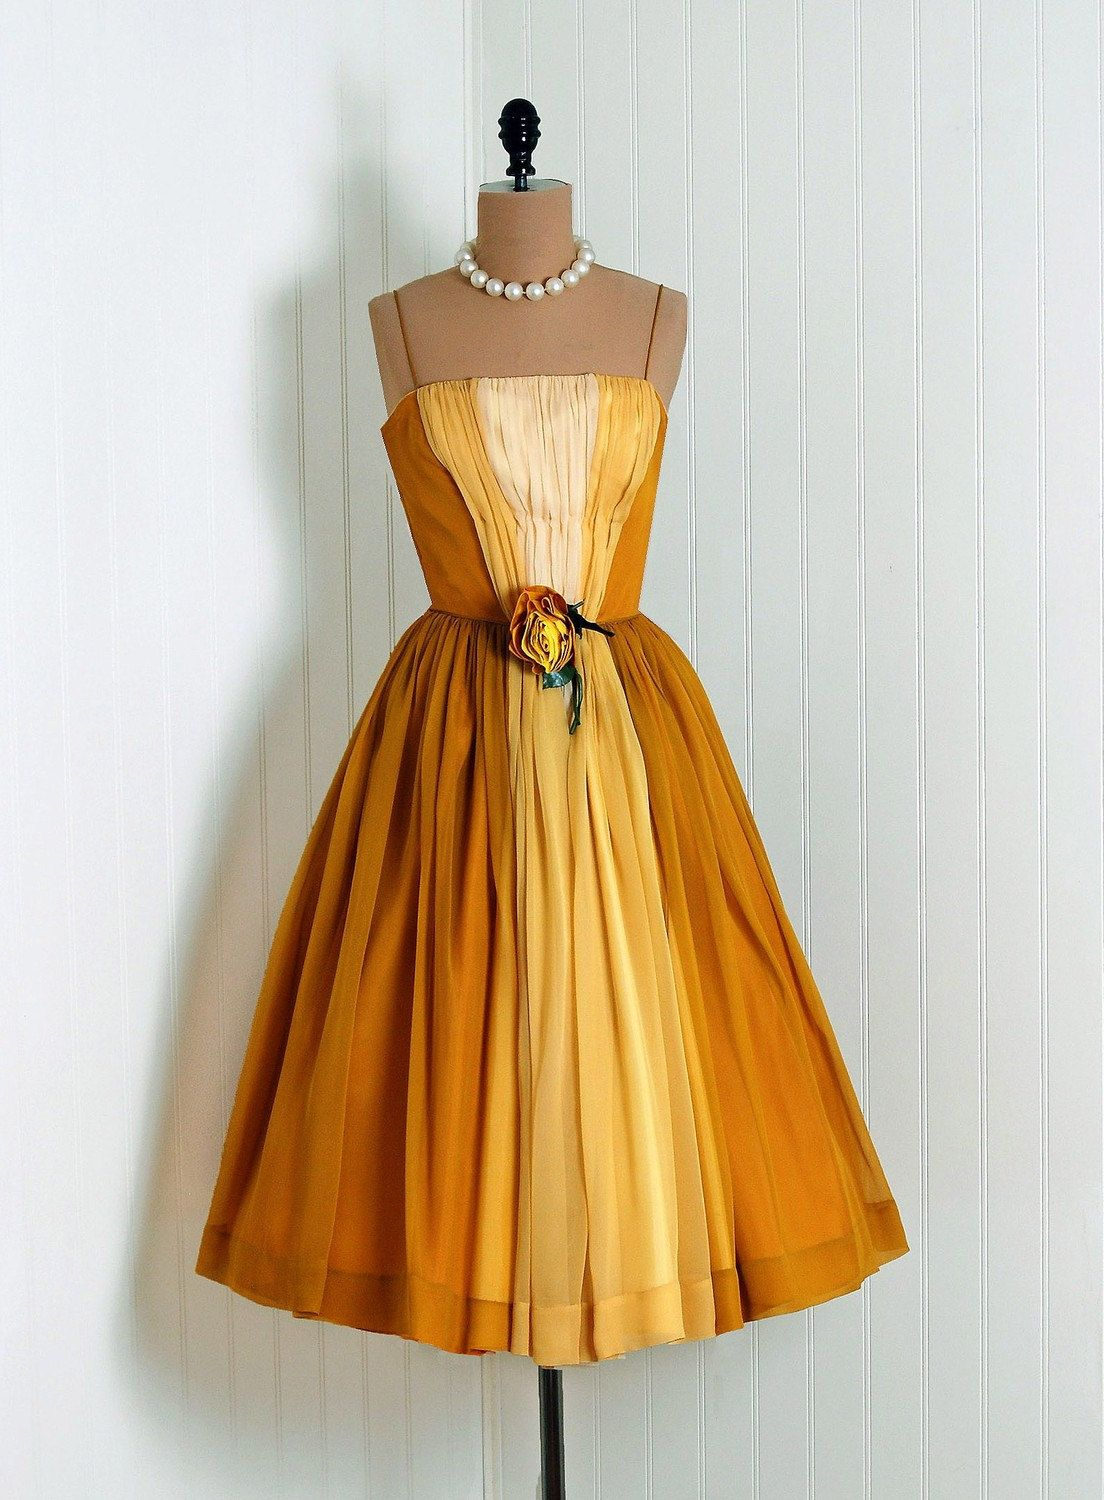 Burnt Orange Ochre And Yellow Dress From The 1950s